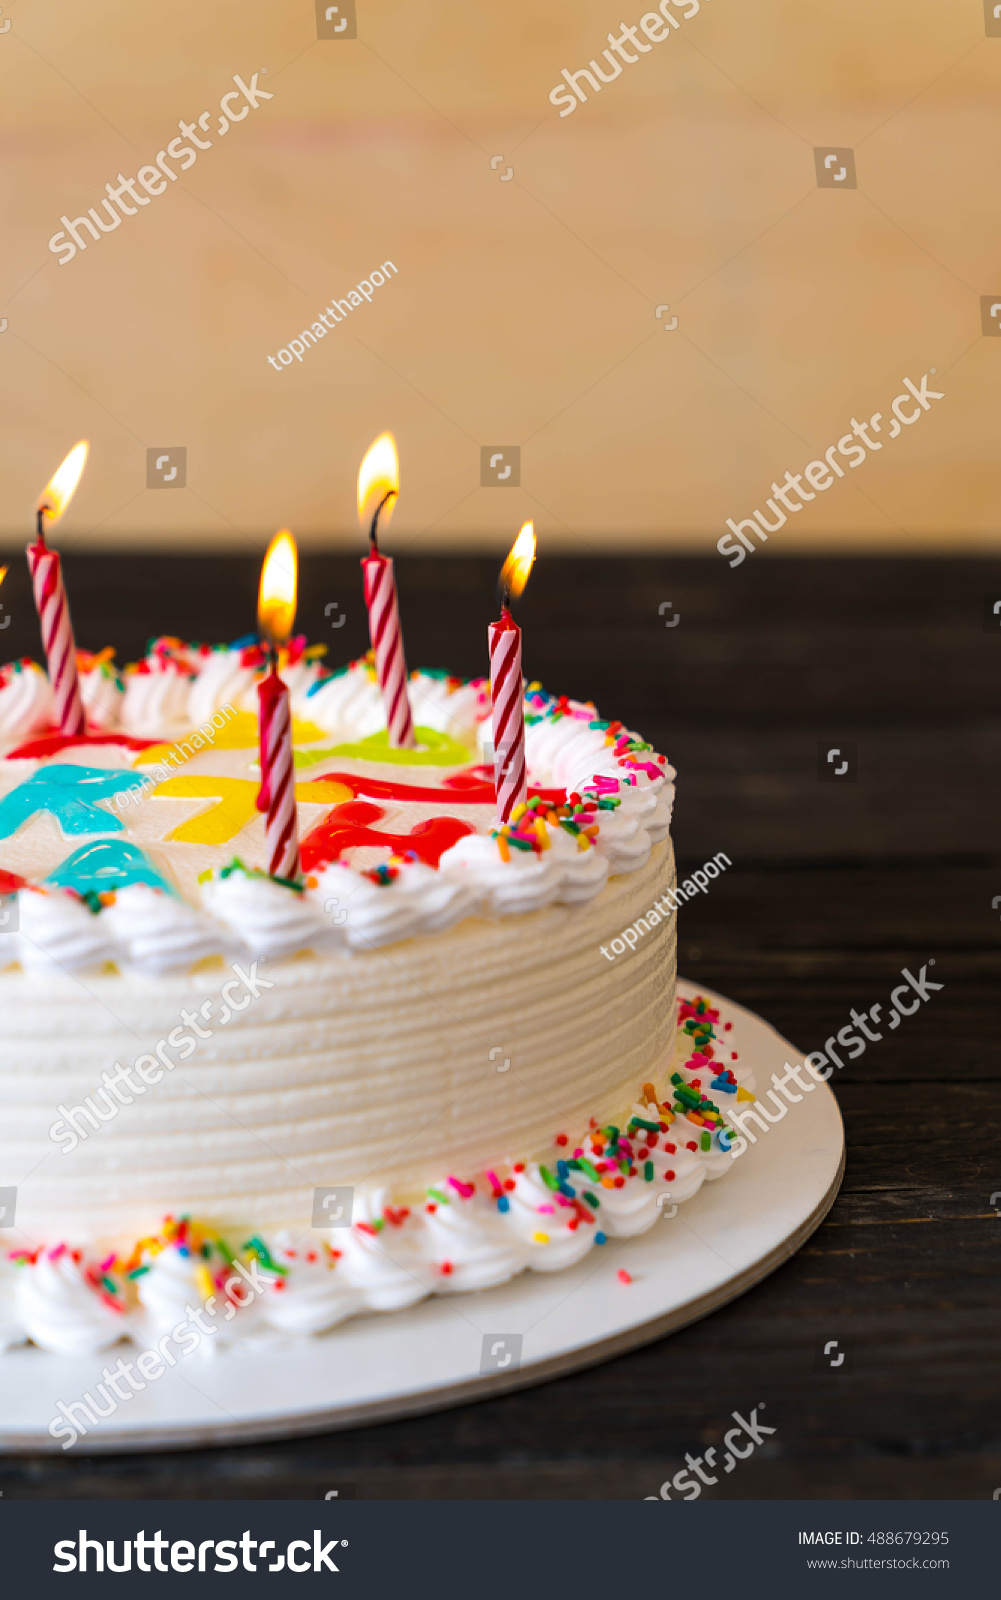 Happy Birthday Cake On Table Stock Photo Edit Now 488679295